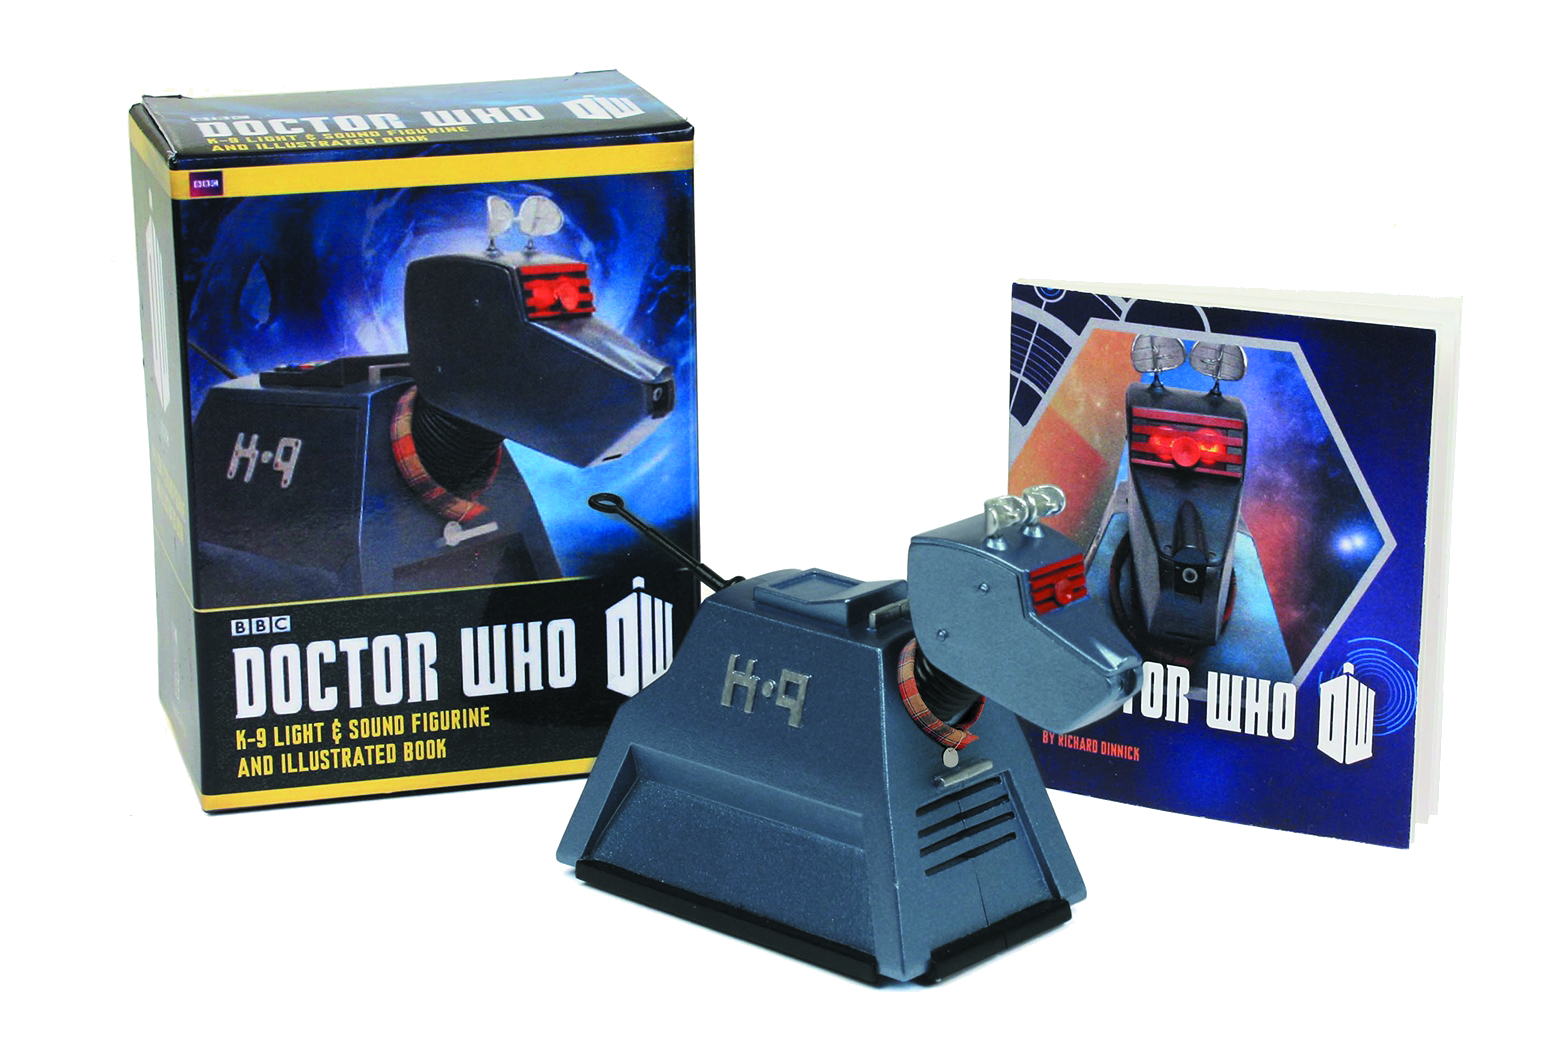 DOCTOR WHO K-9 LIGHT & SOUND FIGURINE & BOOK KIT